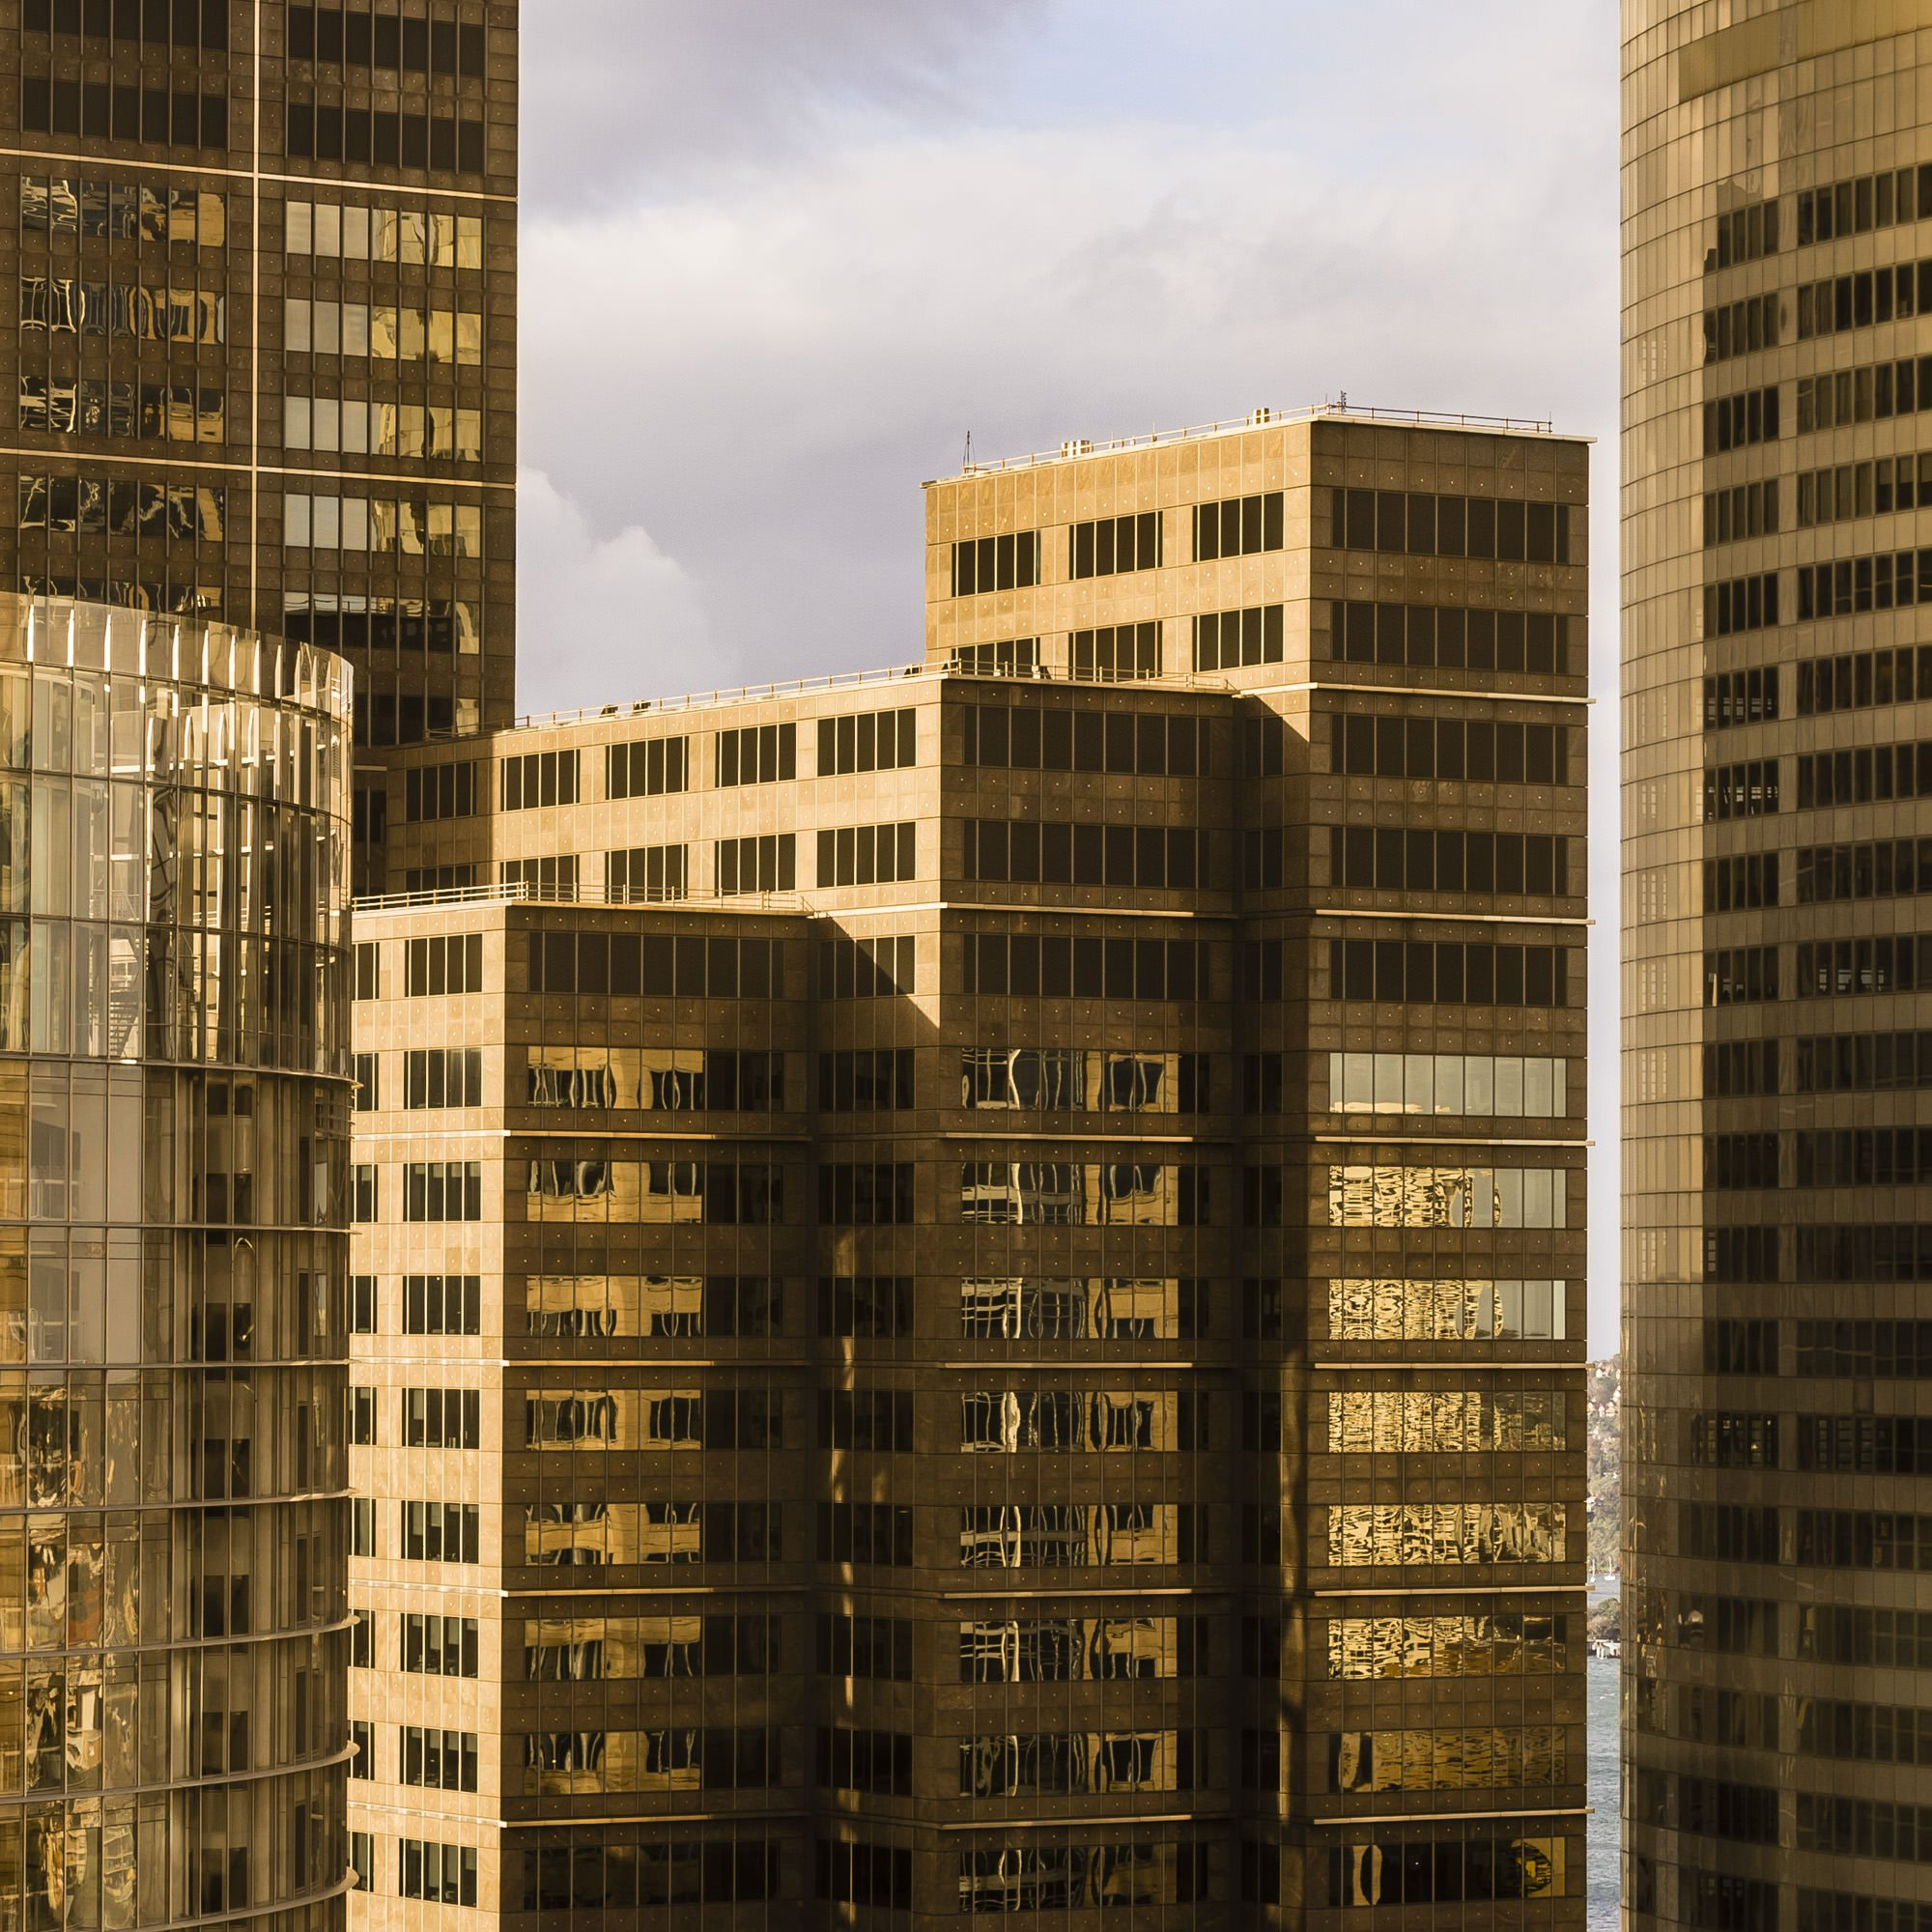 Architectural photography by Sydney photographer Gavin Jowitt